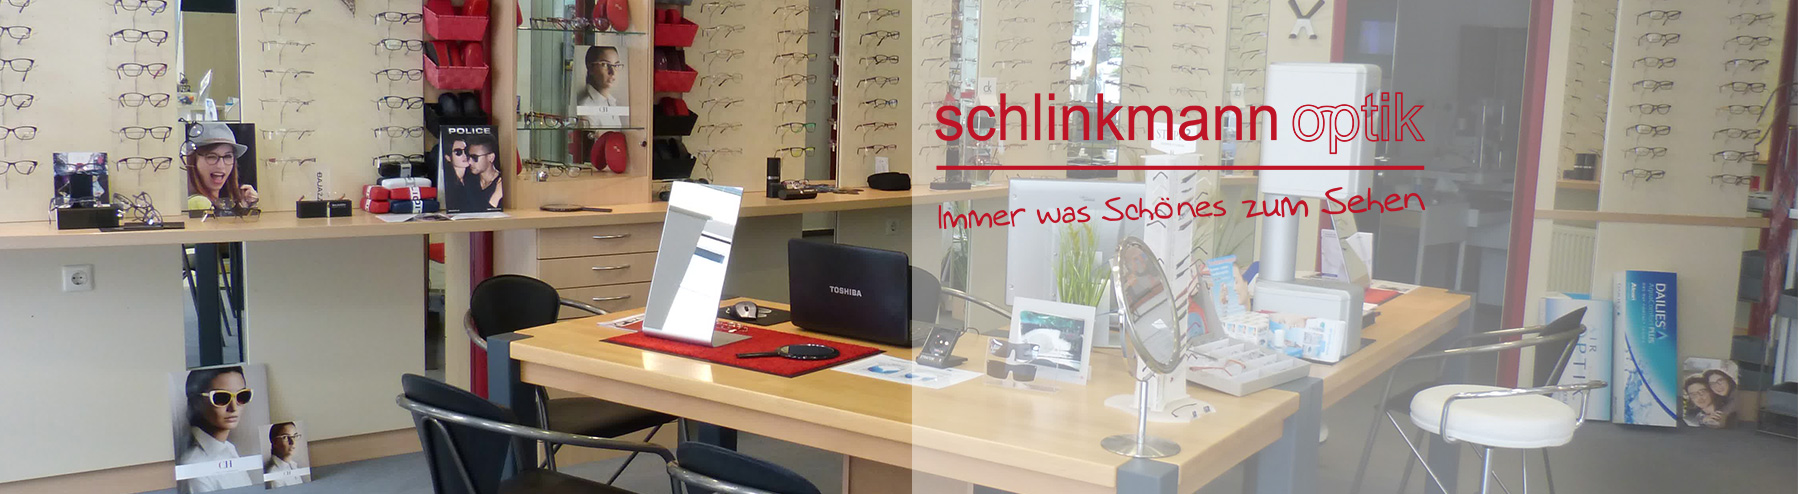 Schlinkmann Optik